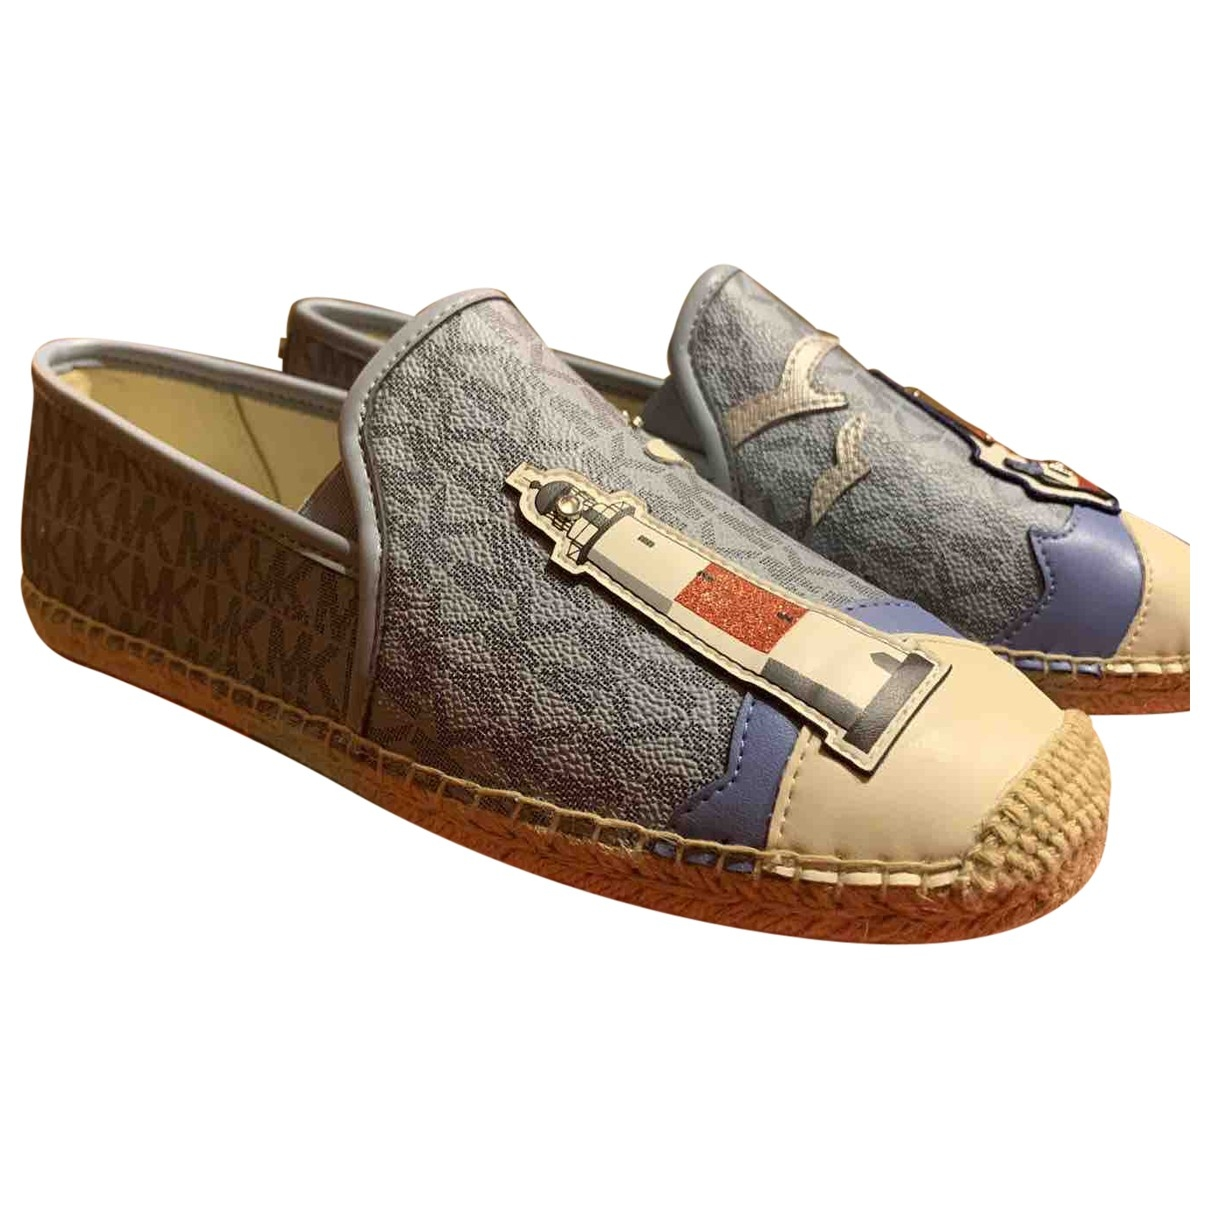 Michael Kors \N Blue Leather Espadrilles for Women 38 EU